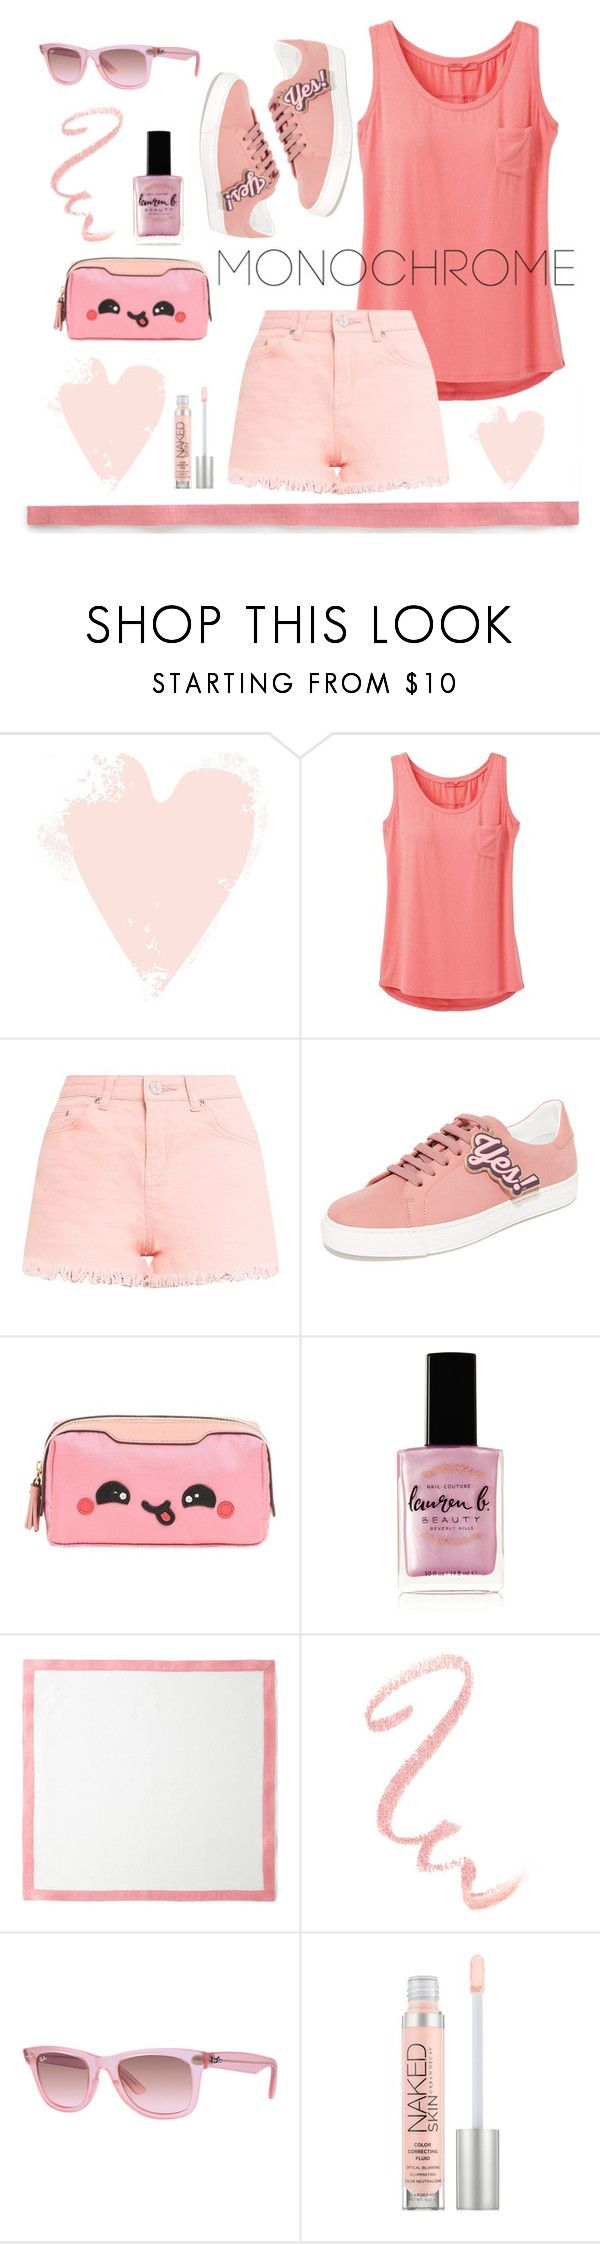 """Relaxed Pink"" by numeangeleyes on Polyvore featuring prAna, Anya Hindmarch, Lauren B. Beauty, Deborah Rhodes, Ray-Ban, Urban Decay and monochromepink"